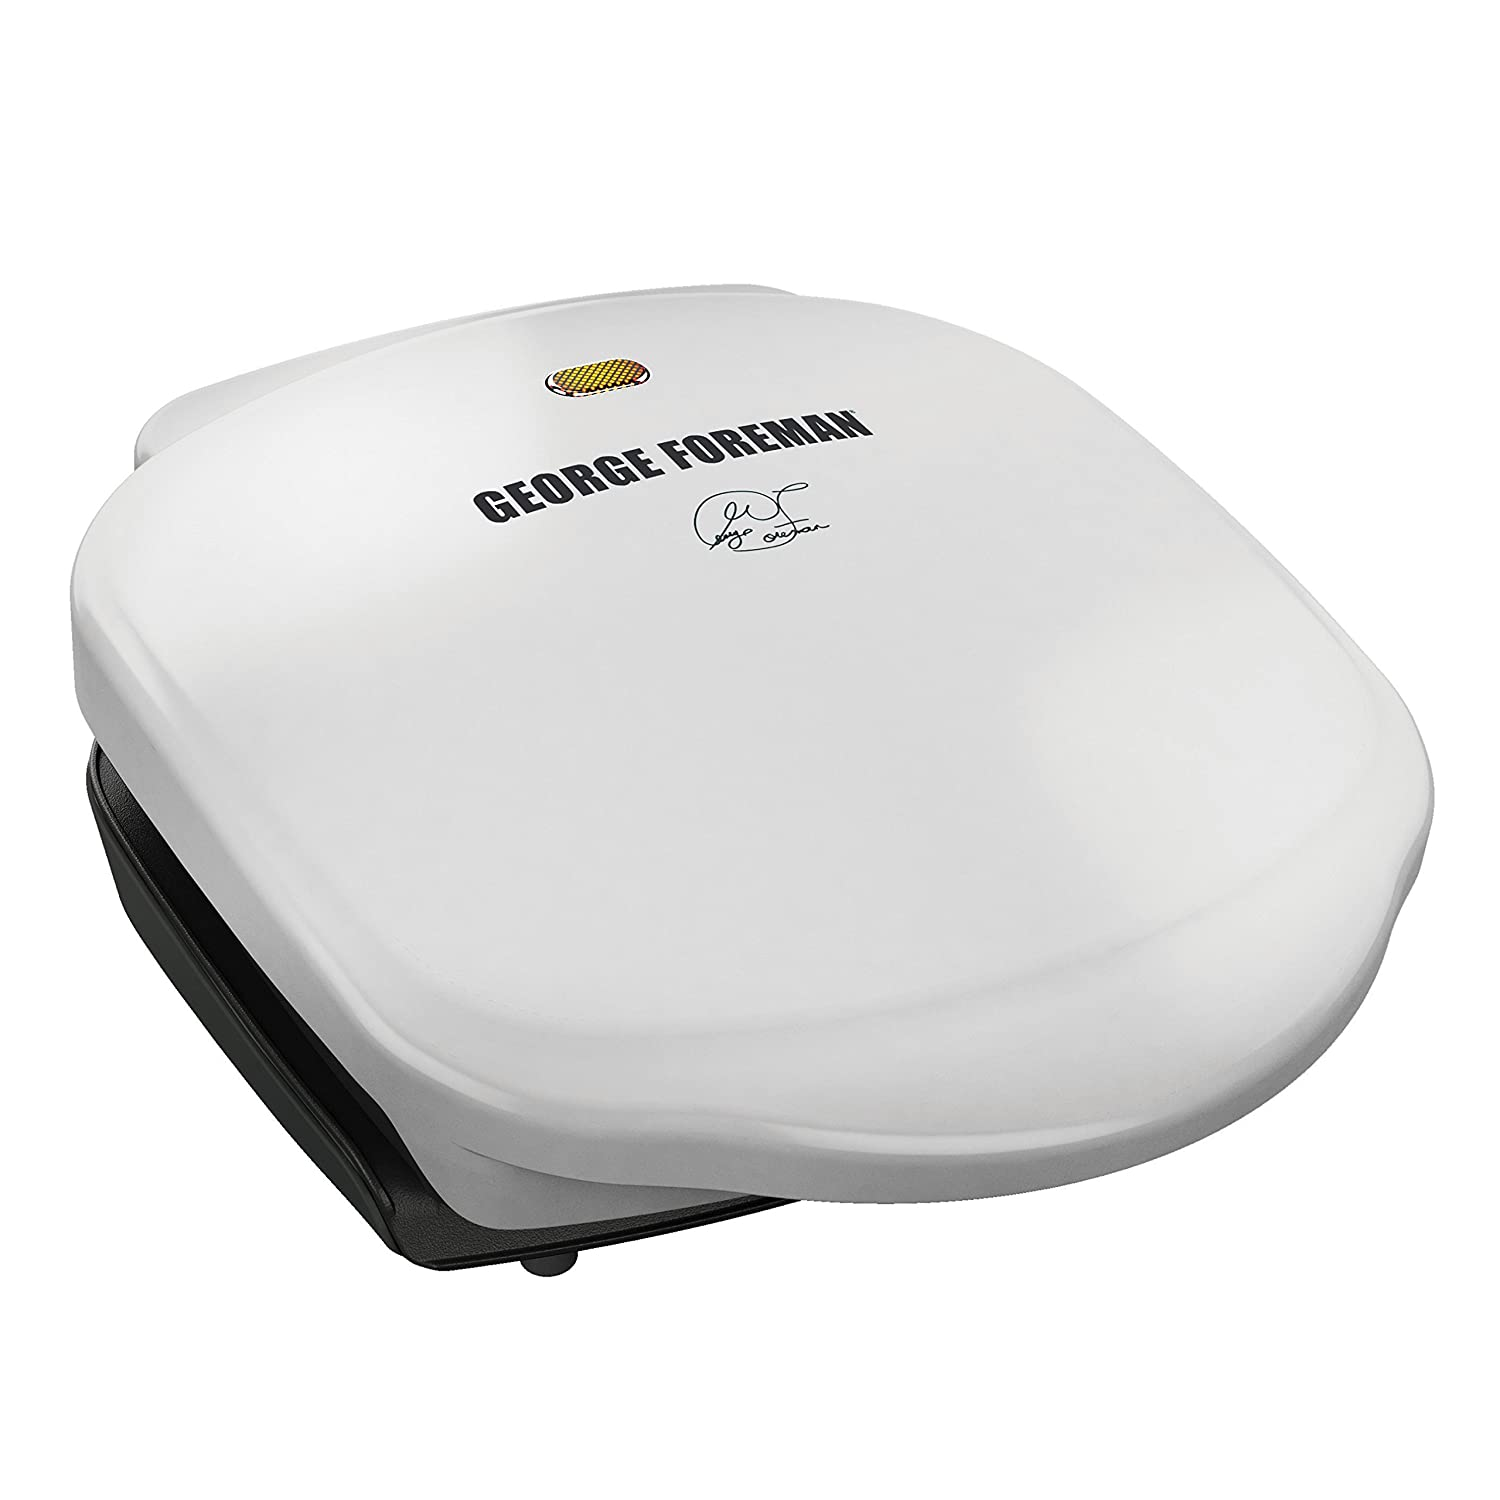 George Foreman GR10WSP1 36-Inch Grill, White